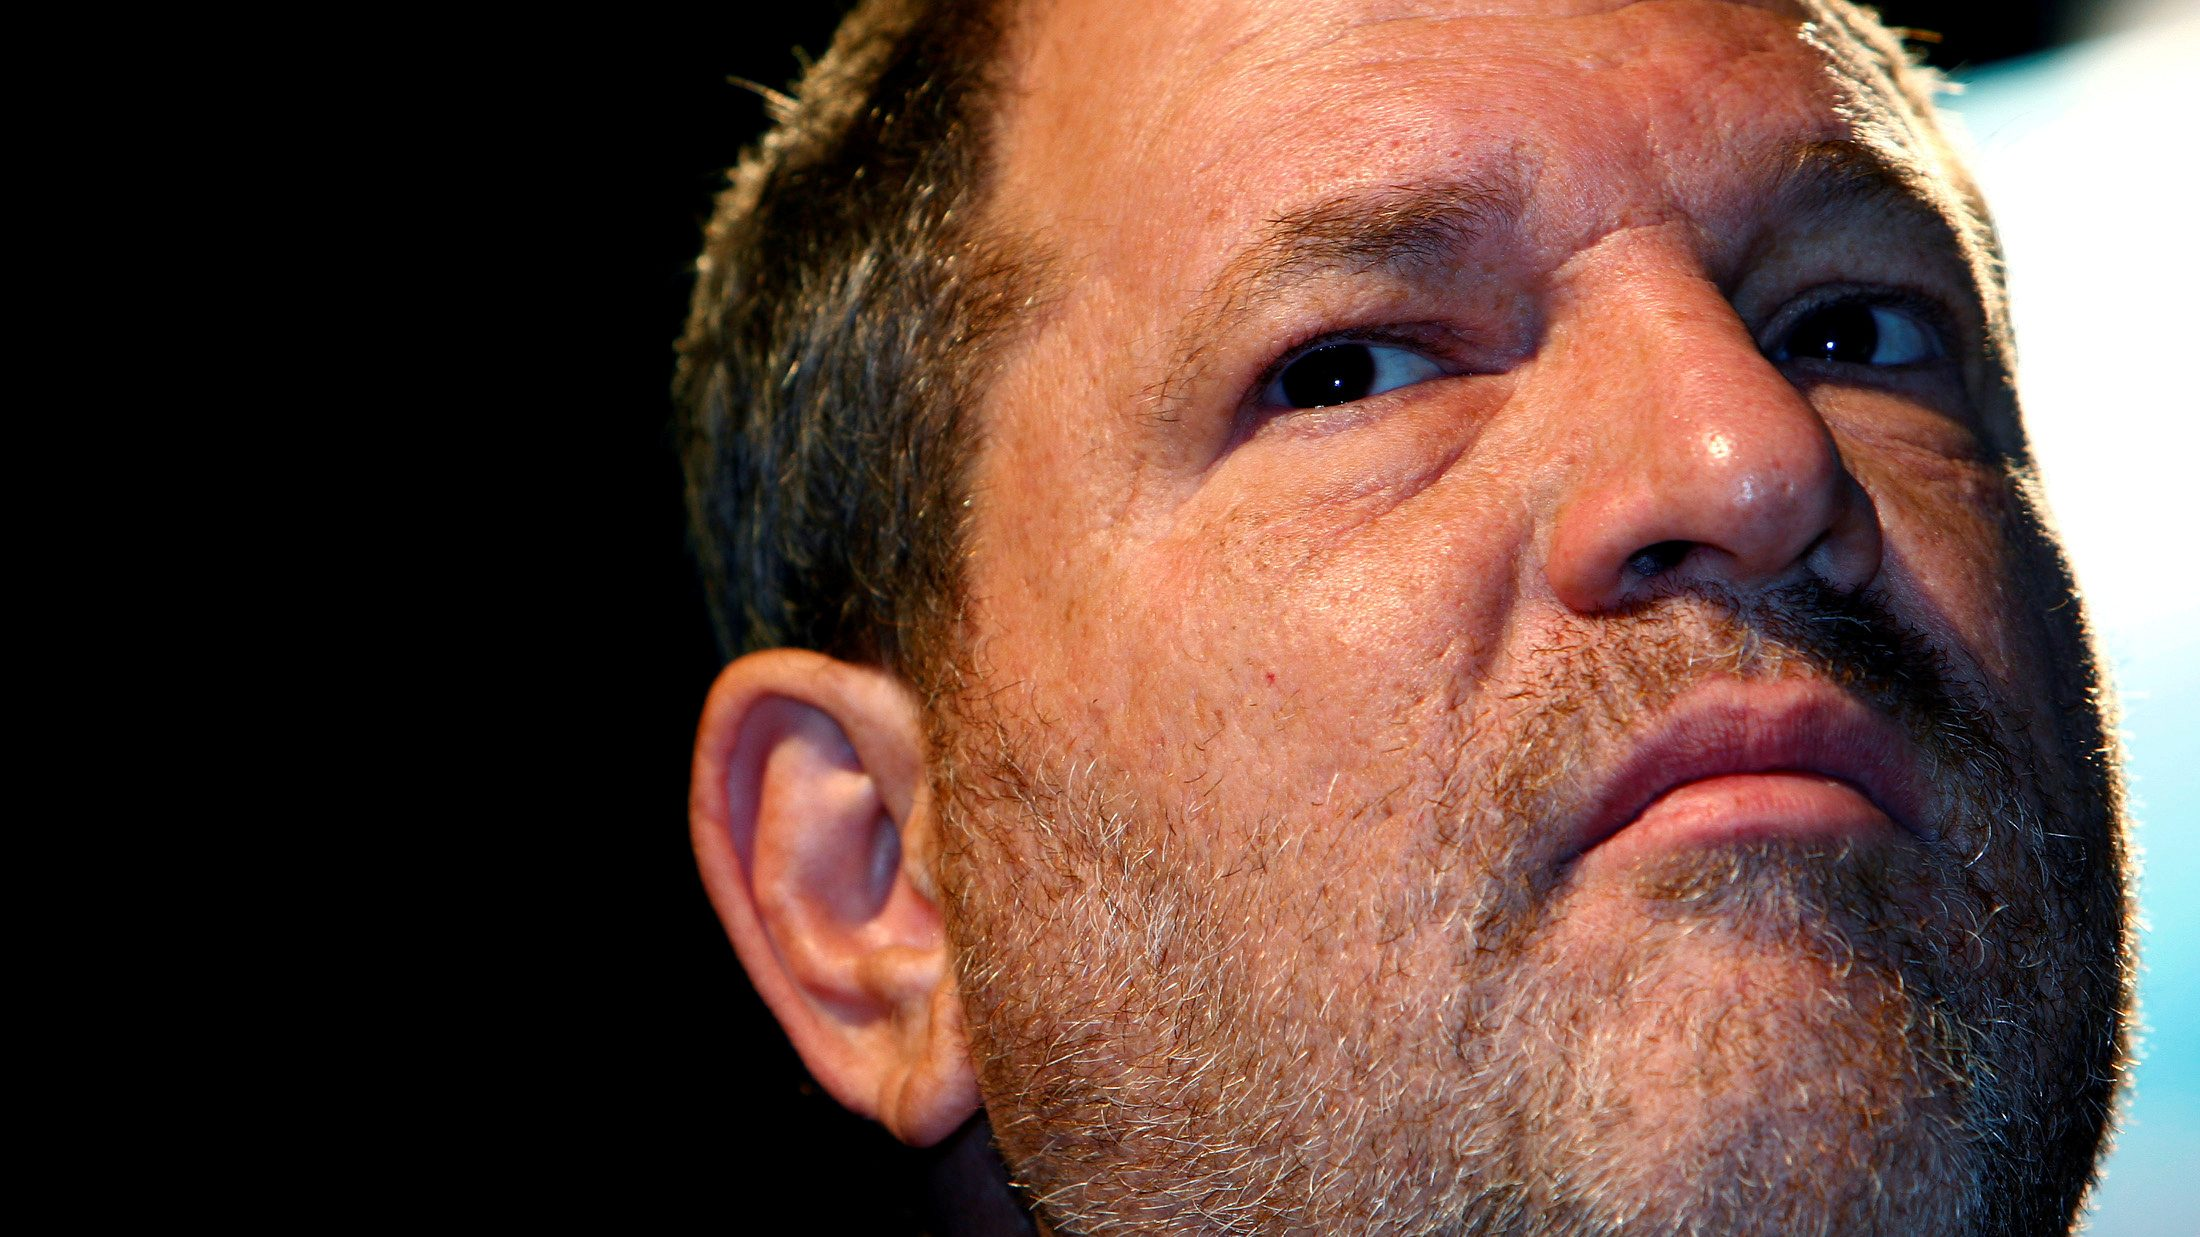 FILE PHOTO: Harvey Weinstein attends the Middle East International Film Festival in Abu Dhabi on October 15, 2007.    REUTERS/Steve Crisp/File Photo - RC139D2B21B0